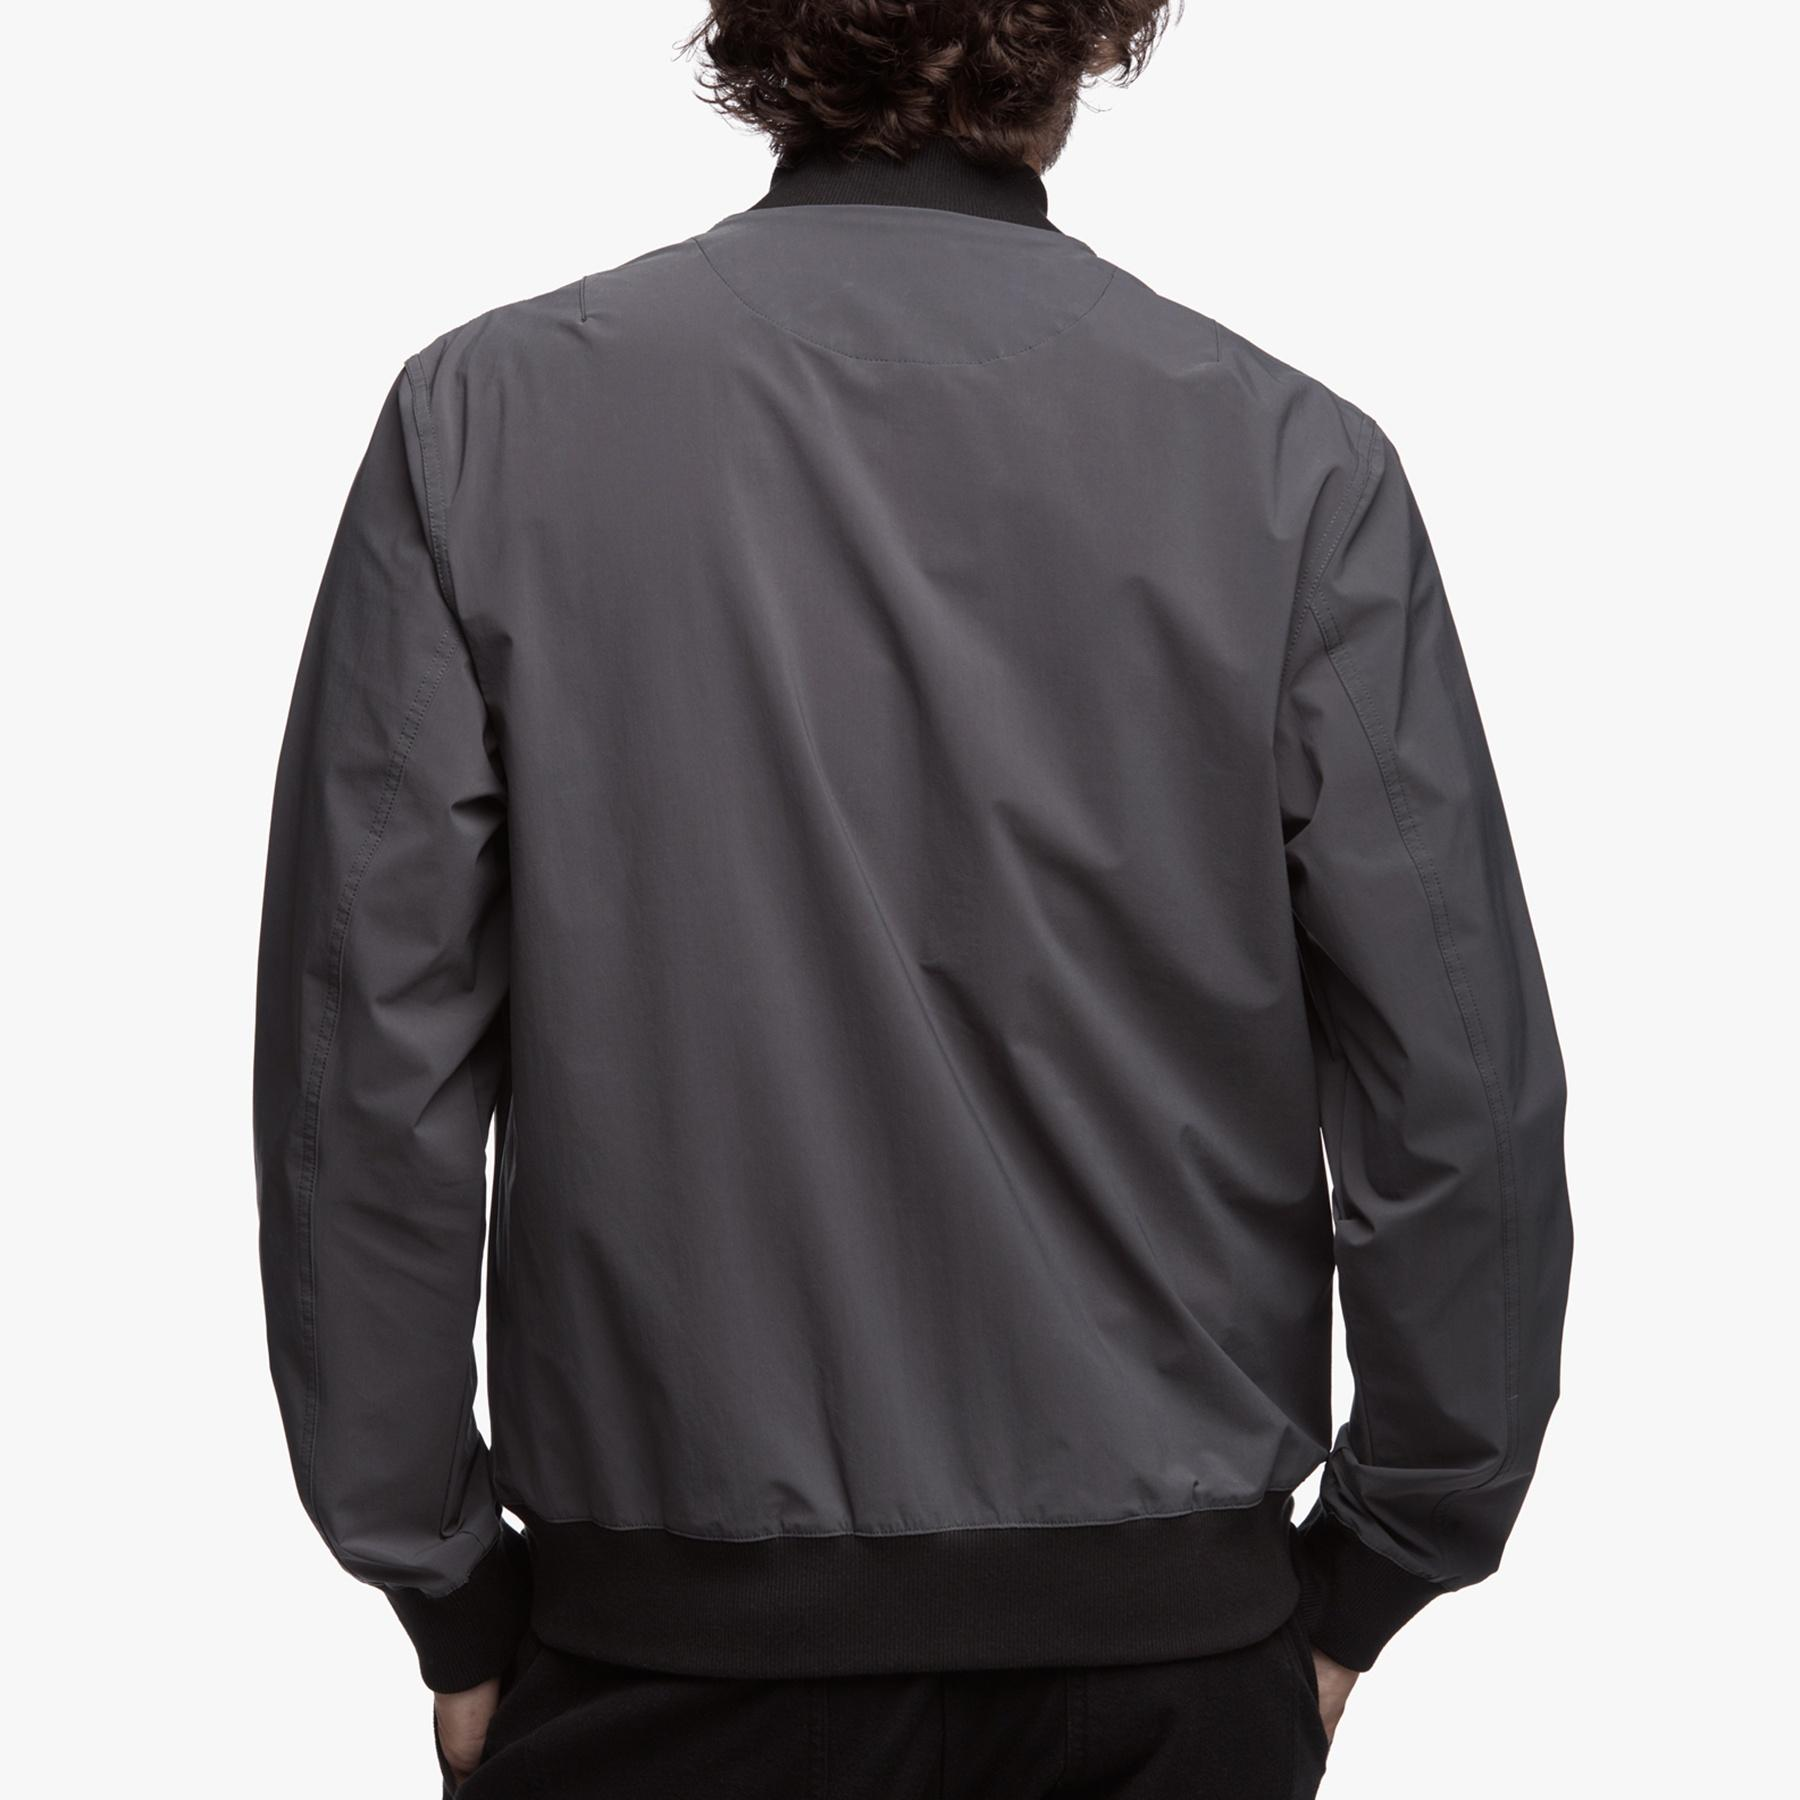 James Perse Cotton Lightweight Bomber Jacket in Slate (Grey) for Men